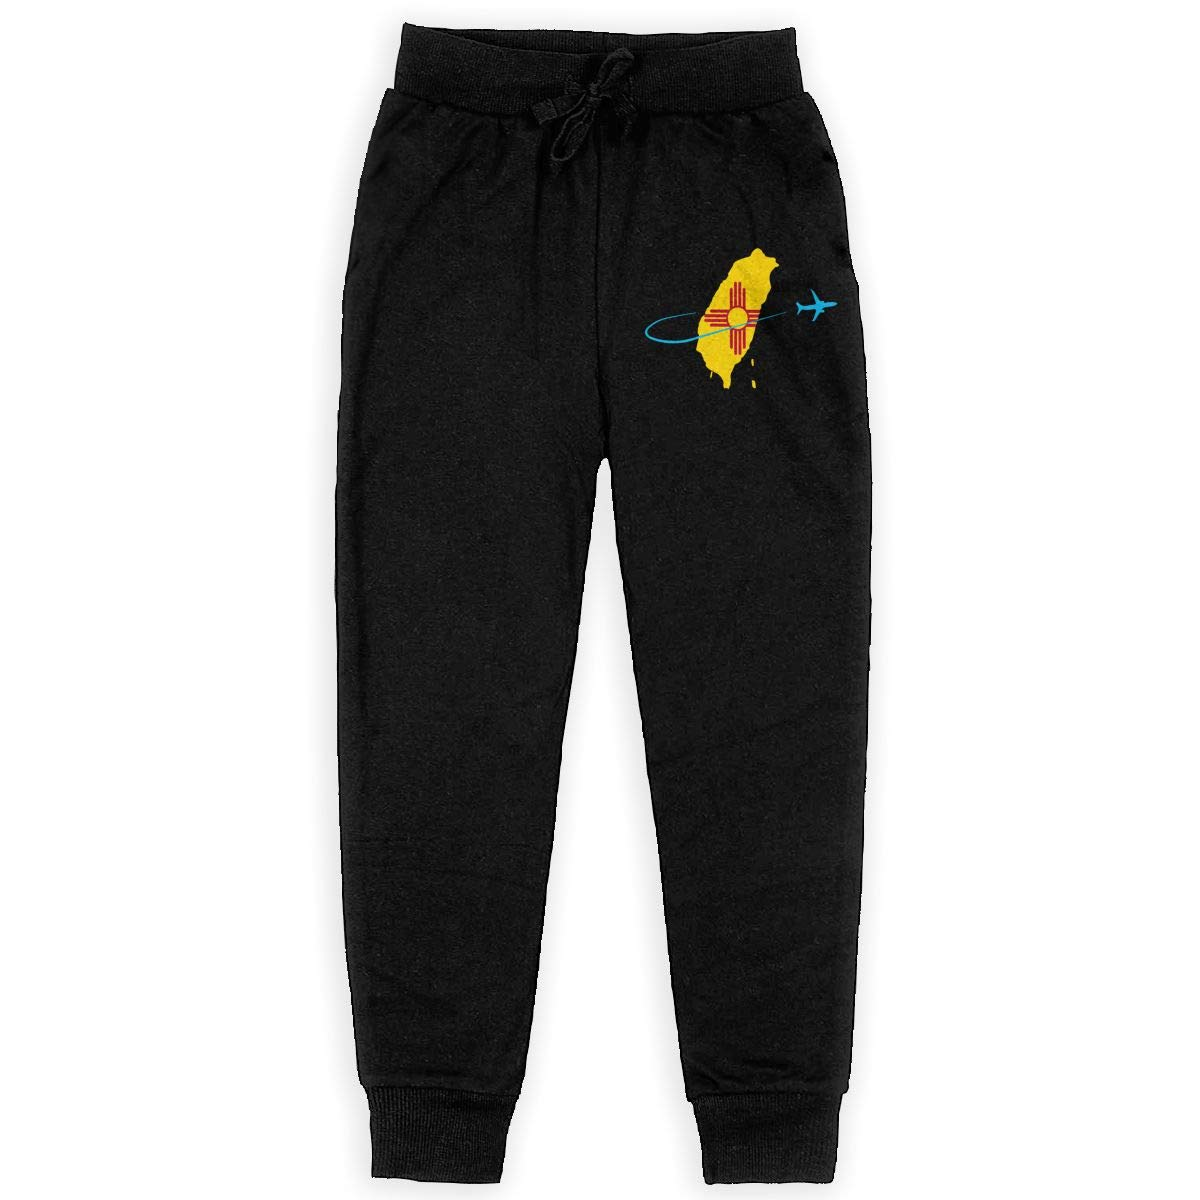 WYZVK22 New Mexico Flag with Plane Soft//Cozy Sweatpants Boys Active Pants for Teen Girls